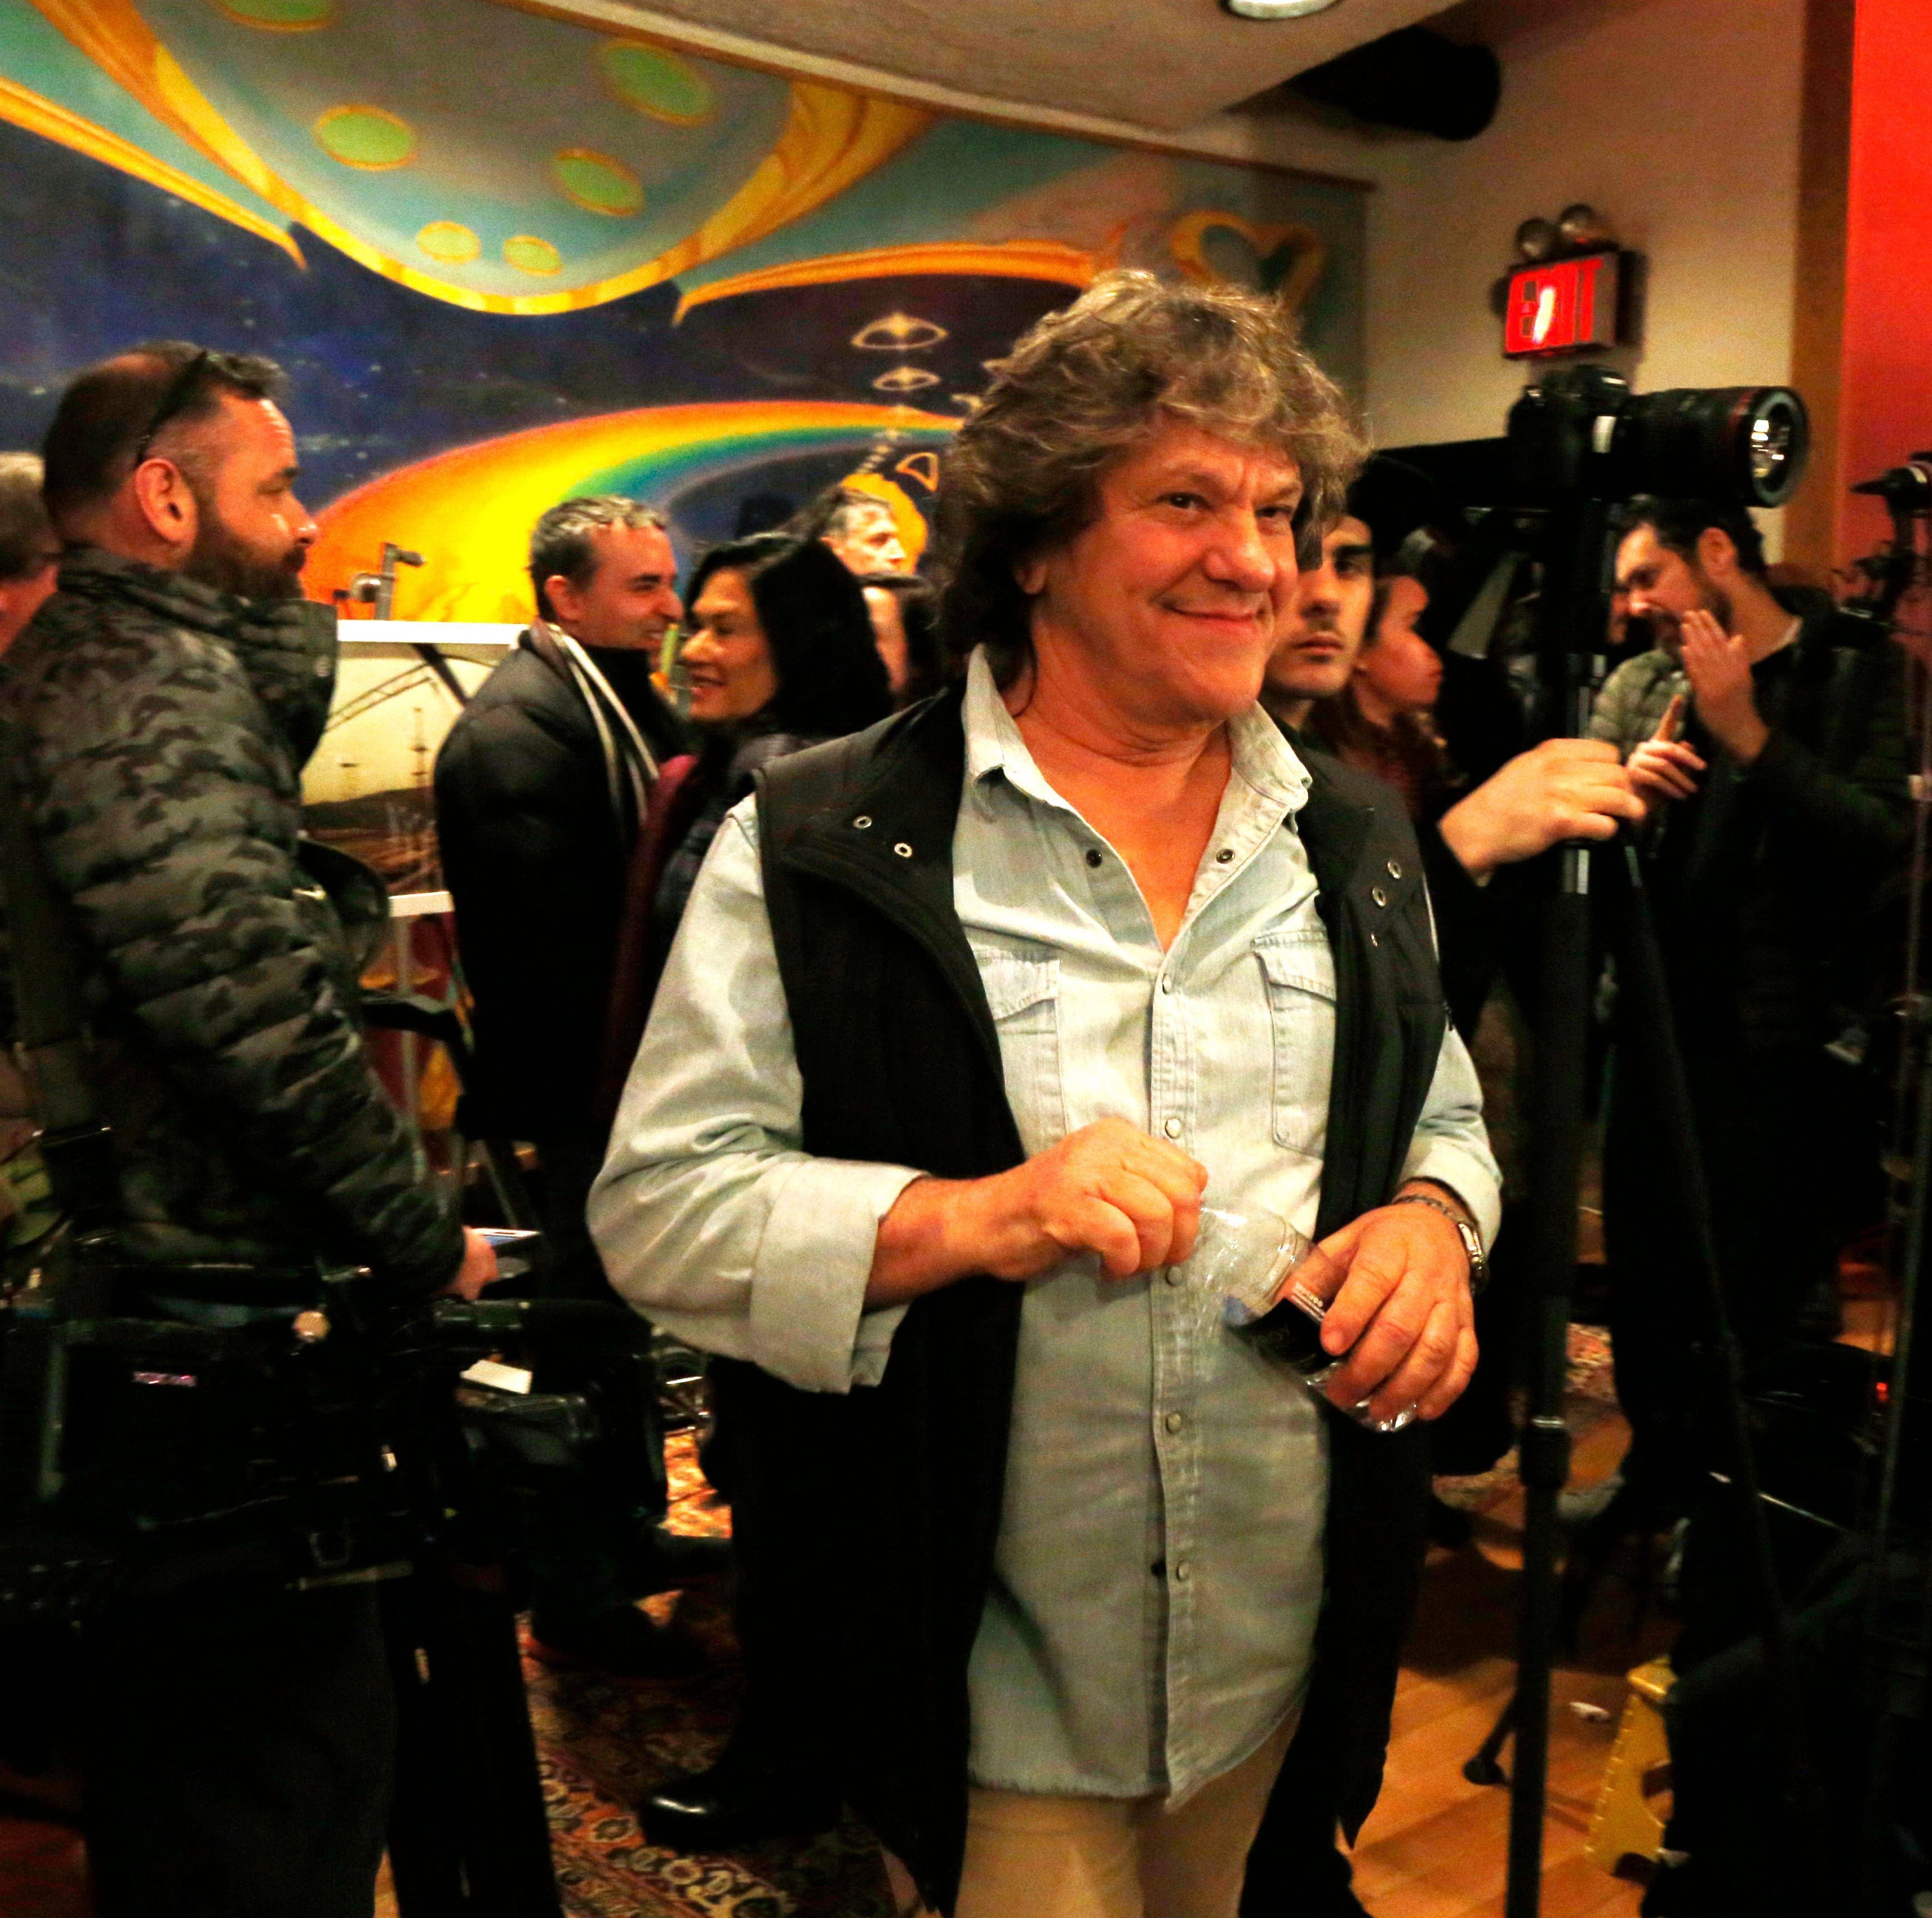 Michael Lang following Tuesday's announcement of the Woodstock 50 line up at Electric Lady Studios in New York City on March 19, 2019.